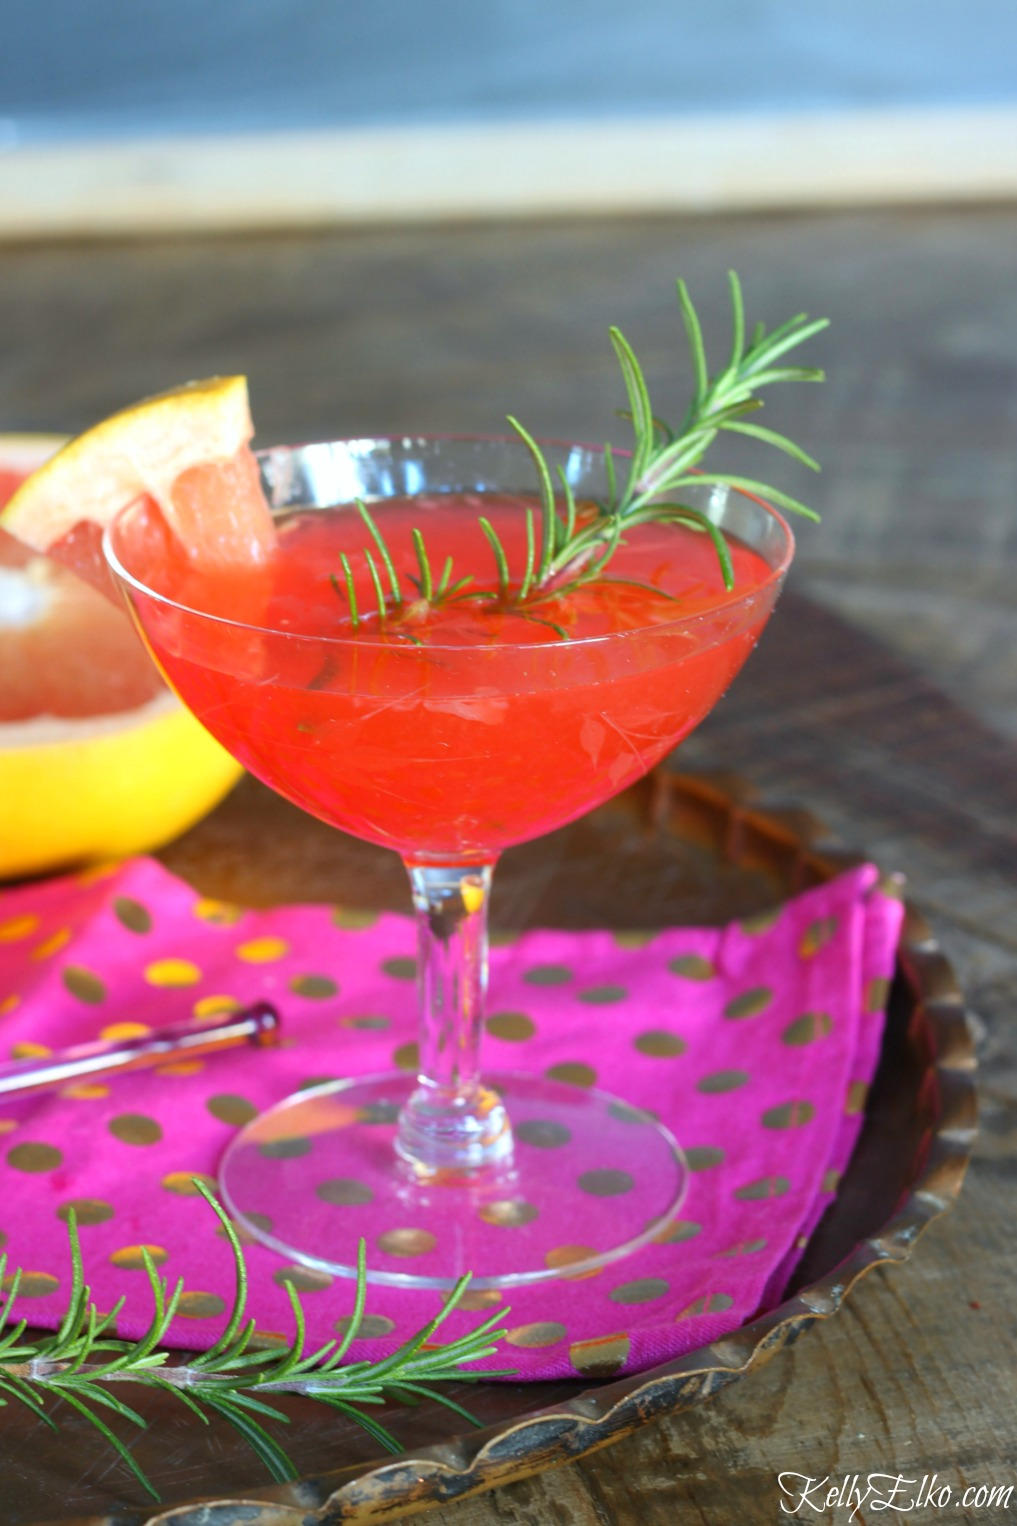 Grapefruit Cocktail - this is a crowd favorite recipe! Make a batch in advance and get ready to party! kellyelko.com